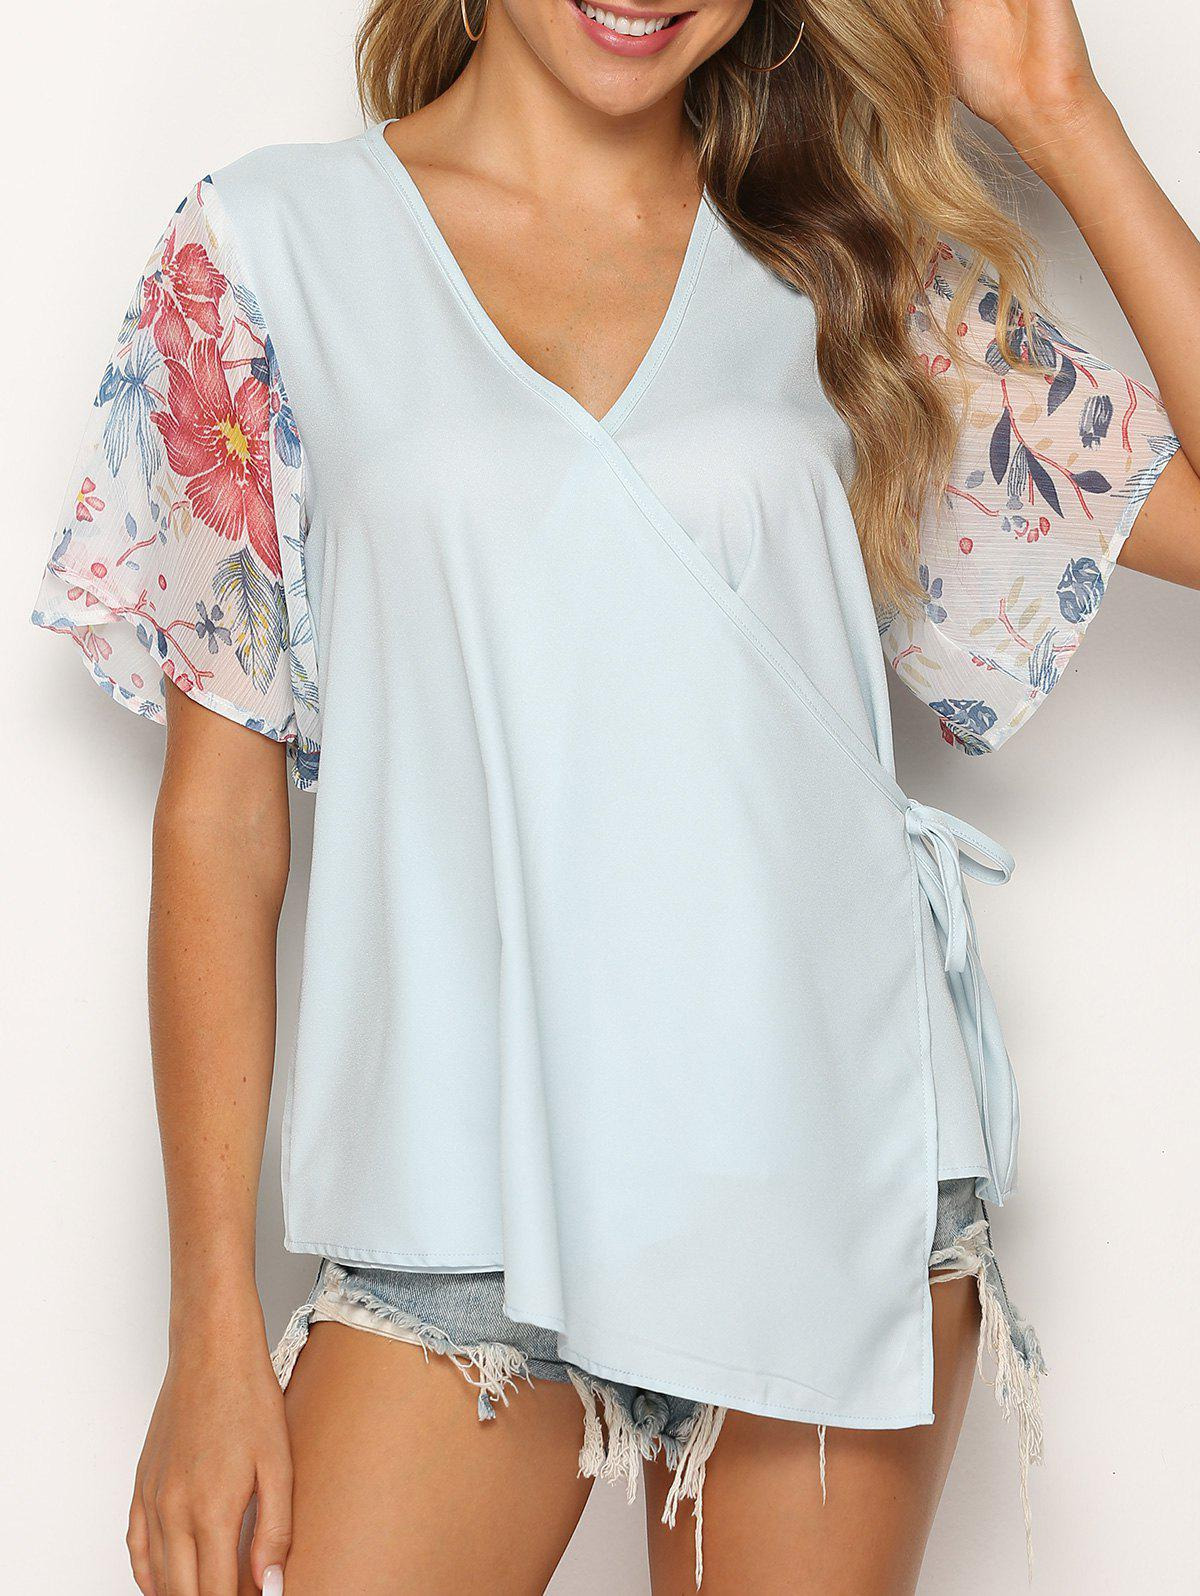 Flower Print Asymmetric Knotted Wrap Blouse - LIGHT BLUE L